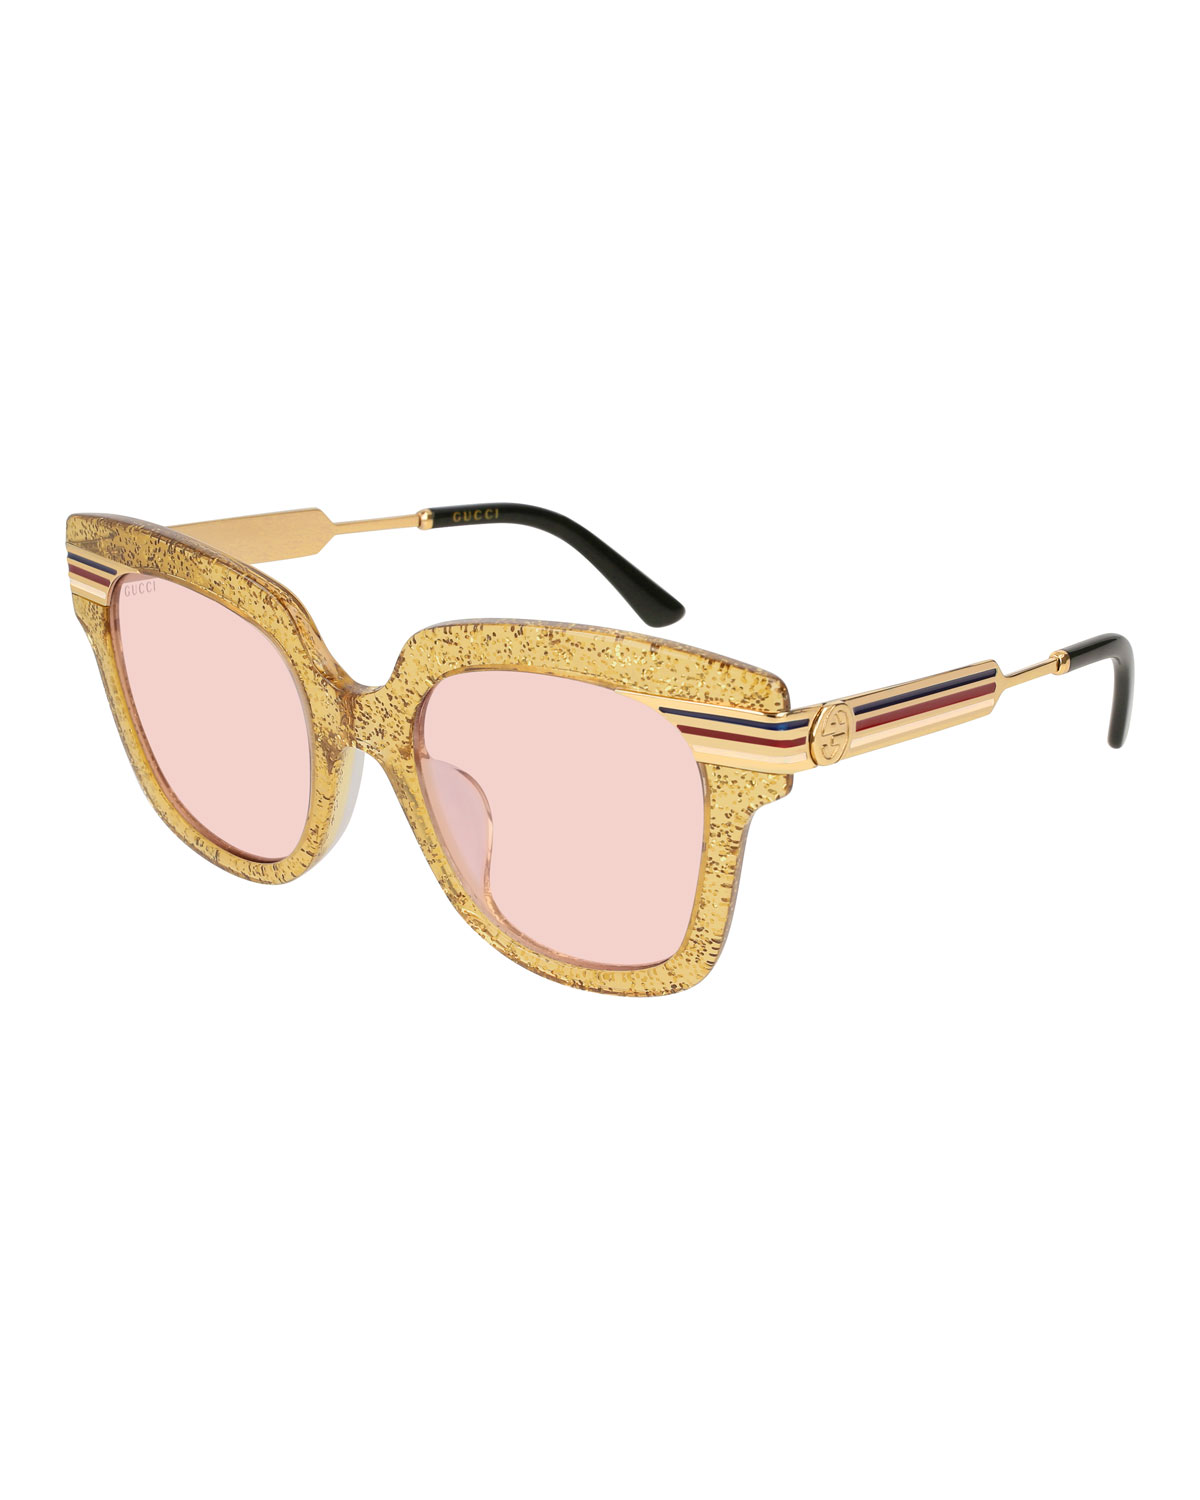 3b1f2818db7a Gucci Metal & Glittered Acetate Square Sylvie Web Sunglasses, Gold ...